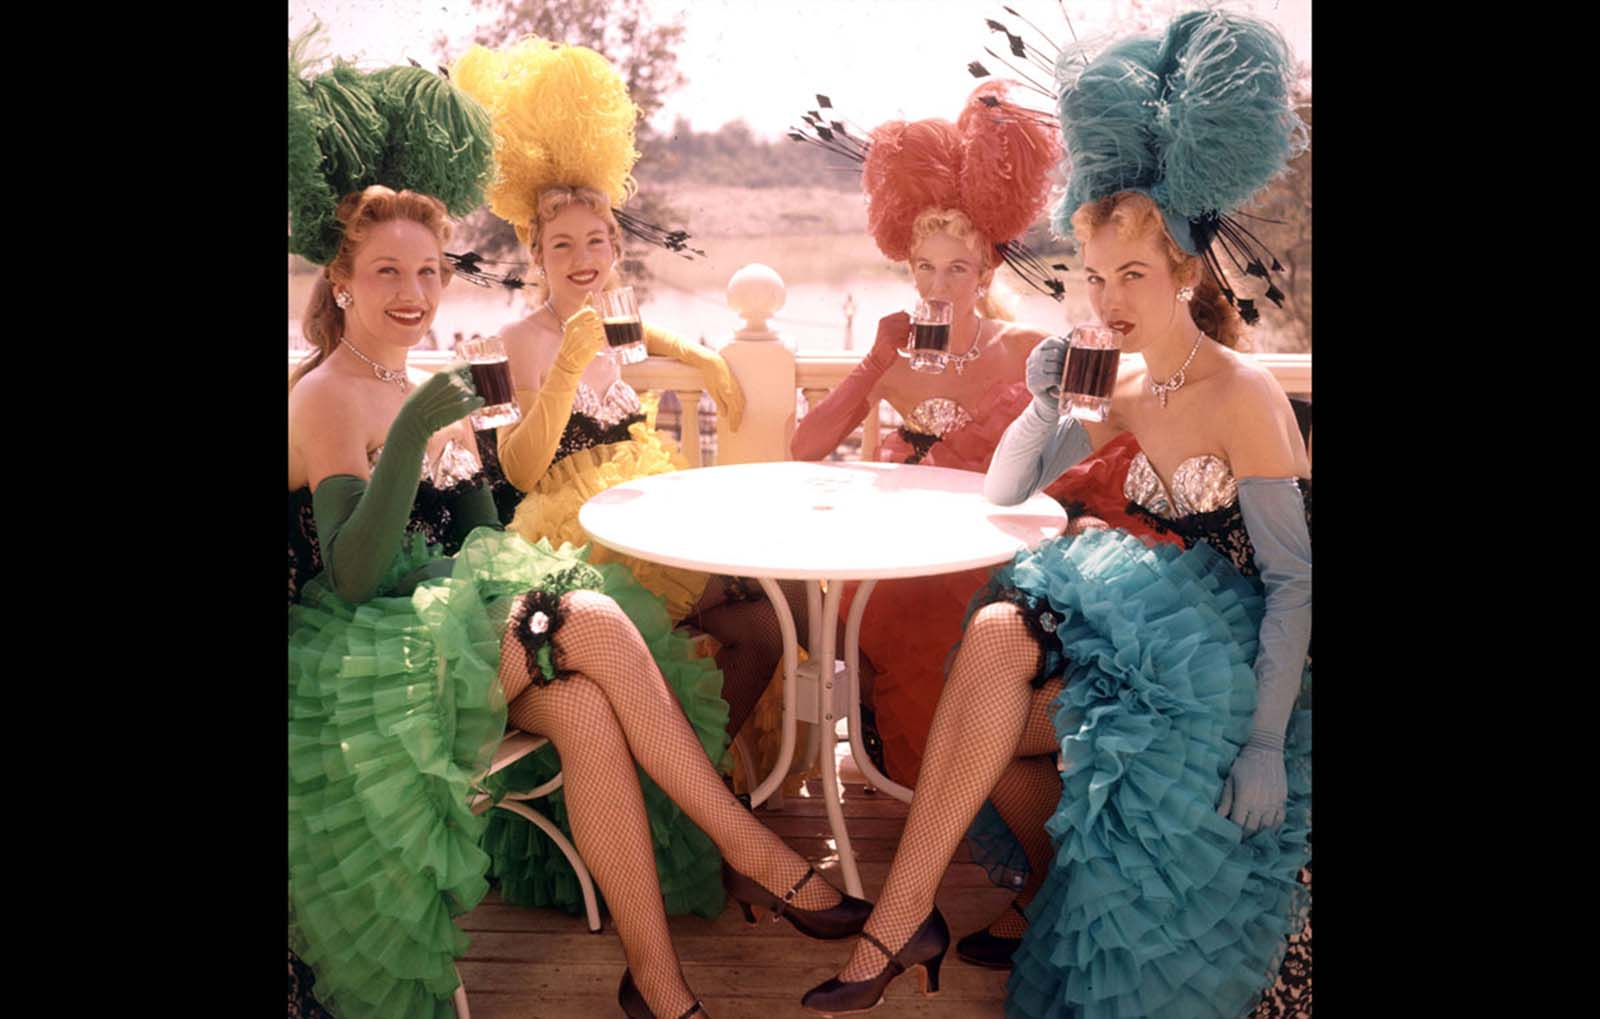 Showgirls in costume sit at an outdoor table and drink from mugs at Disneyland in July 1955.